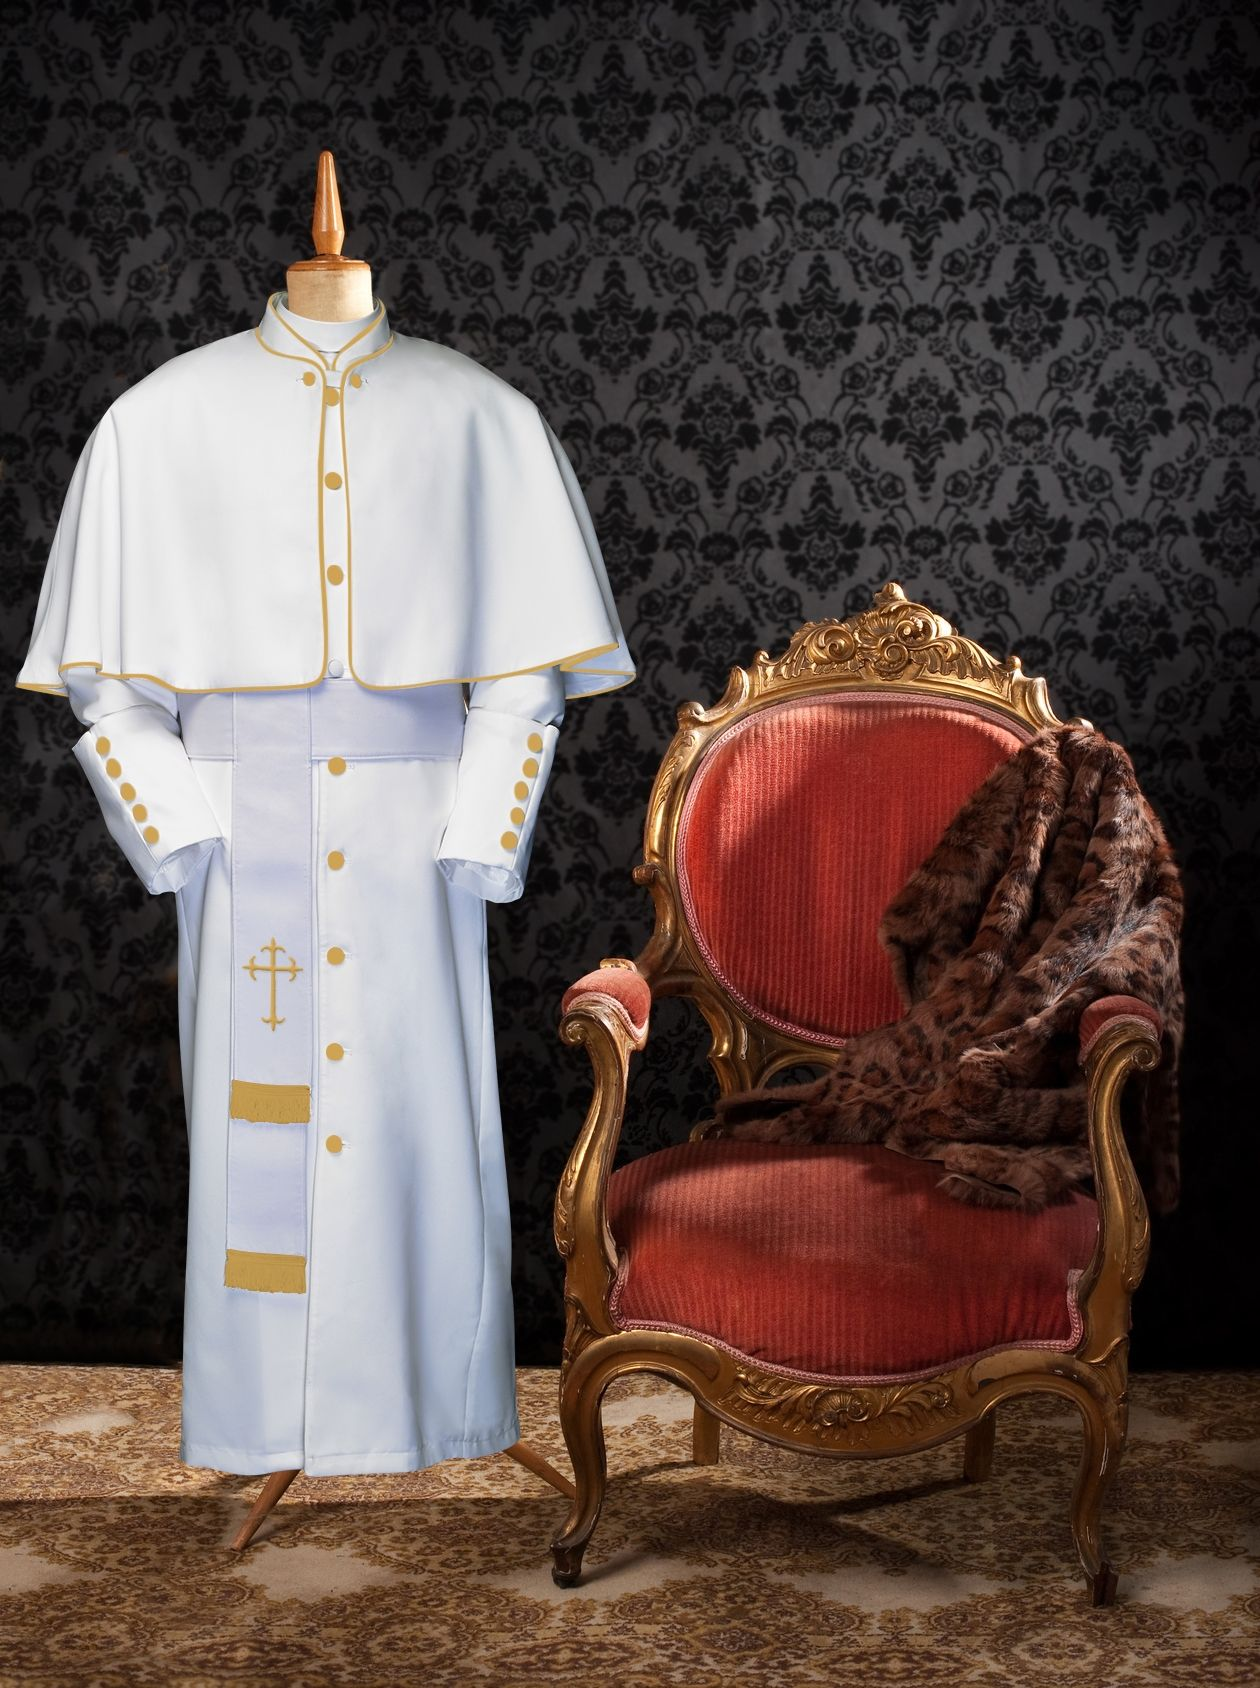 173 M. Limited Exclusive Men's Pastor/Clergy Robe White/Gold Luxury Ensemble